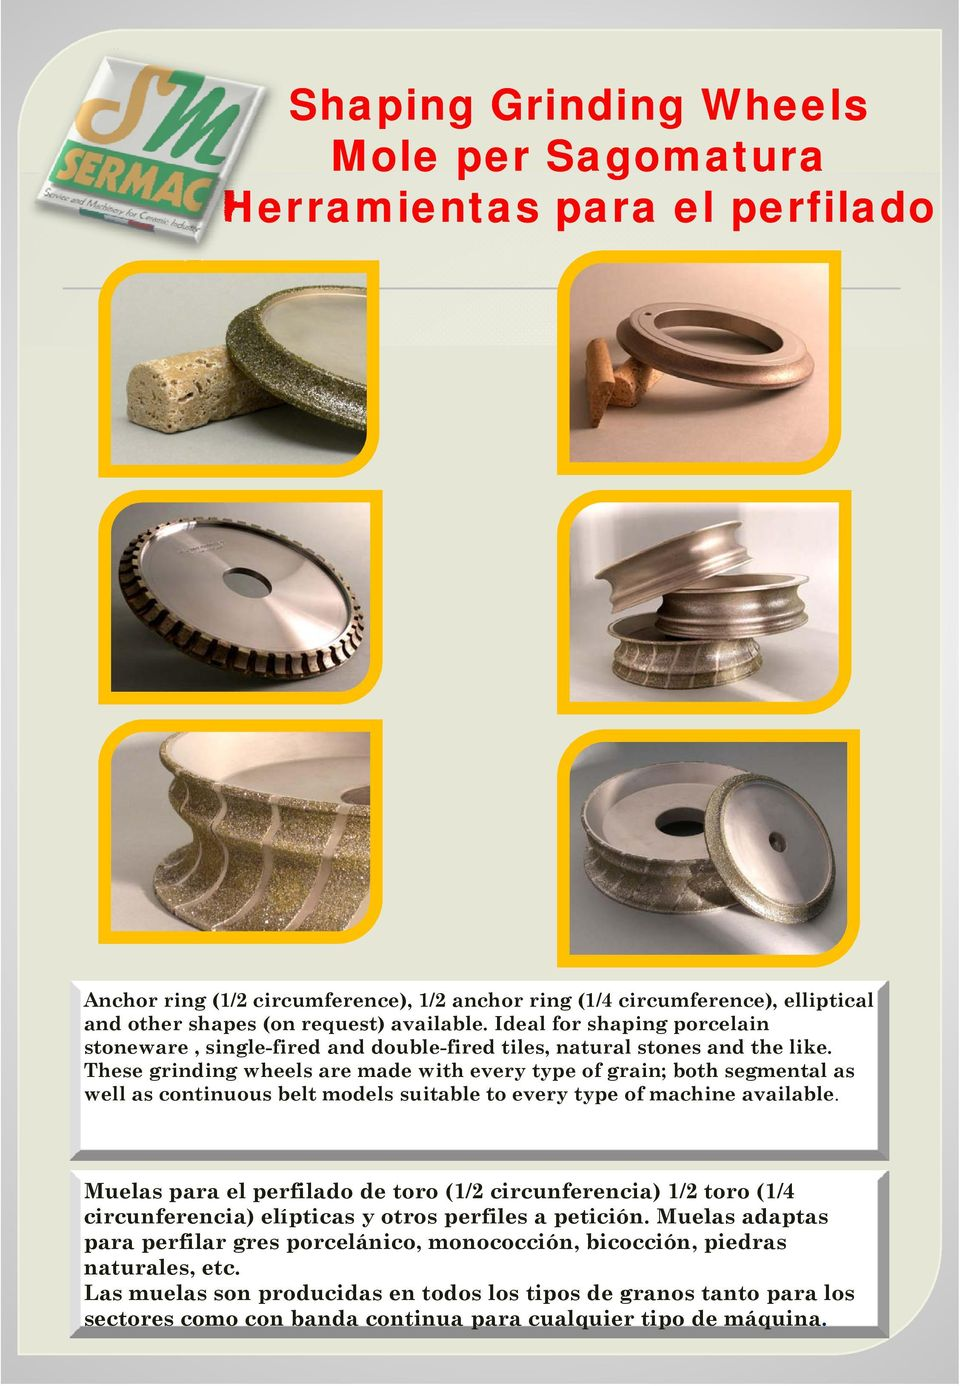 These grinding wheels are made with every type of grain; both segmental as well as continuous belt models suitable to every type of machine available.